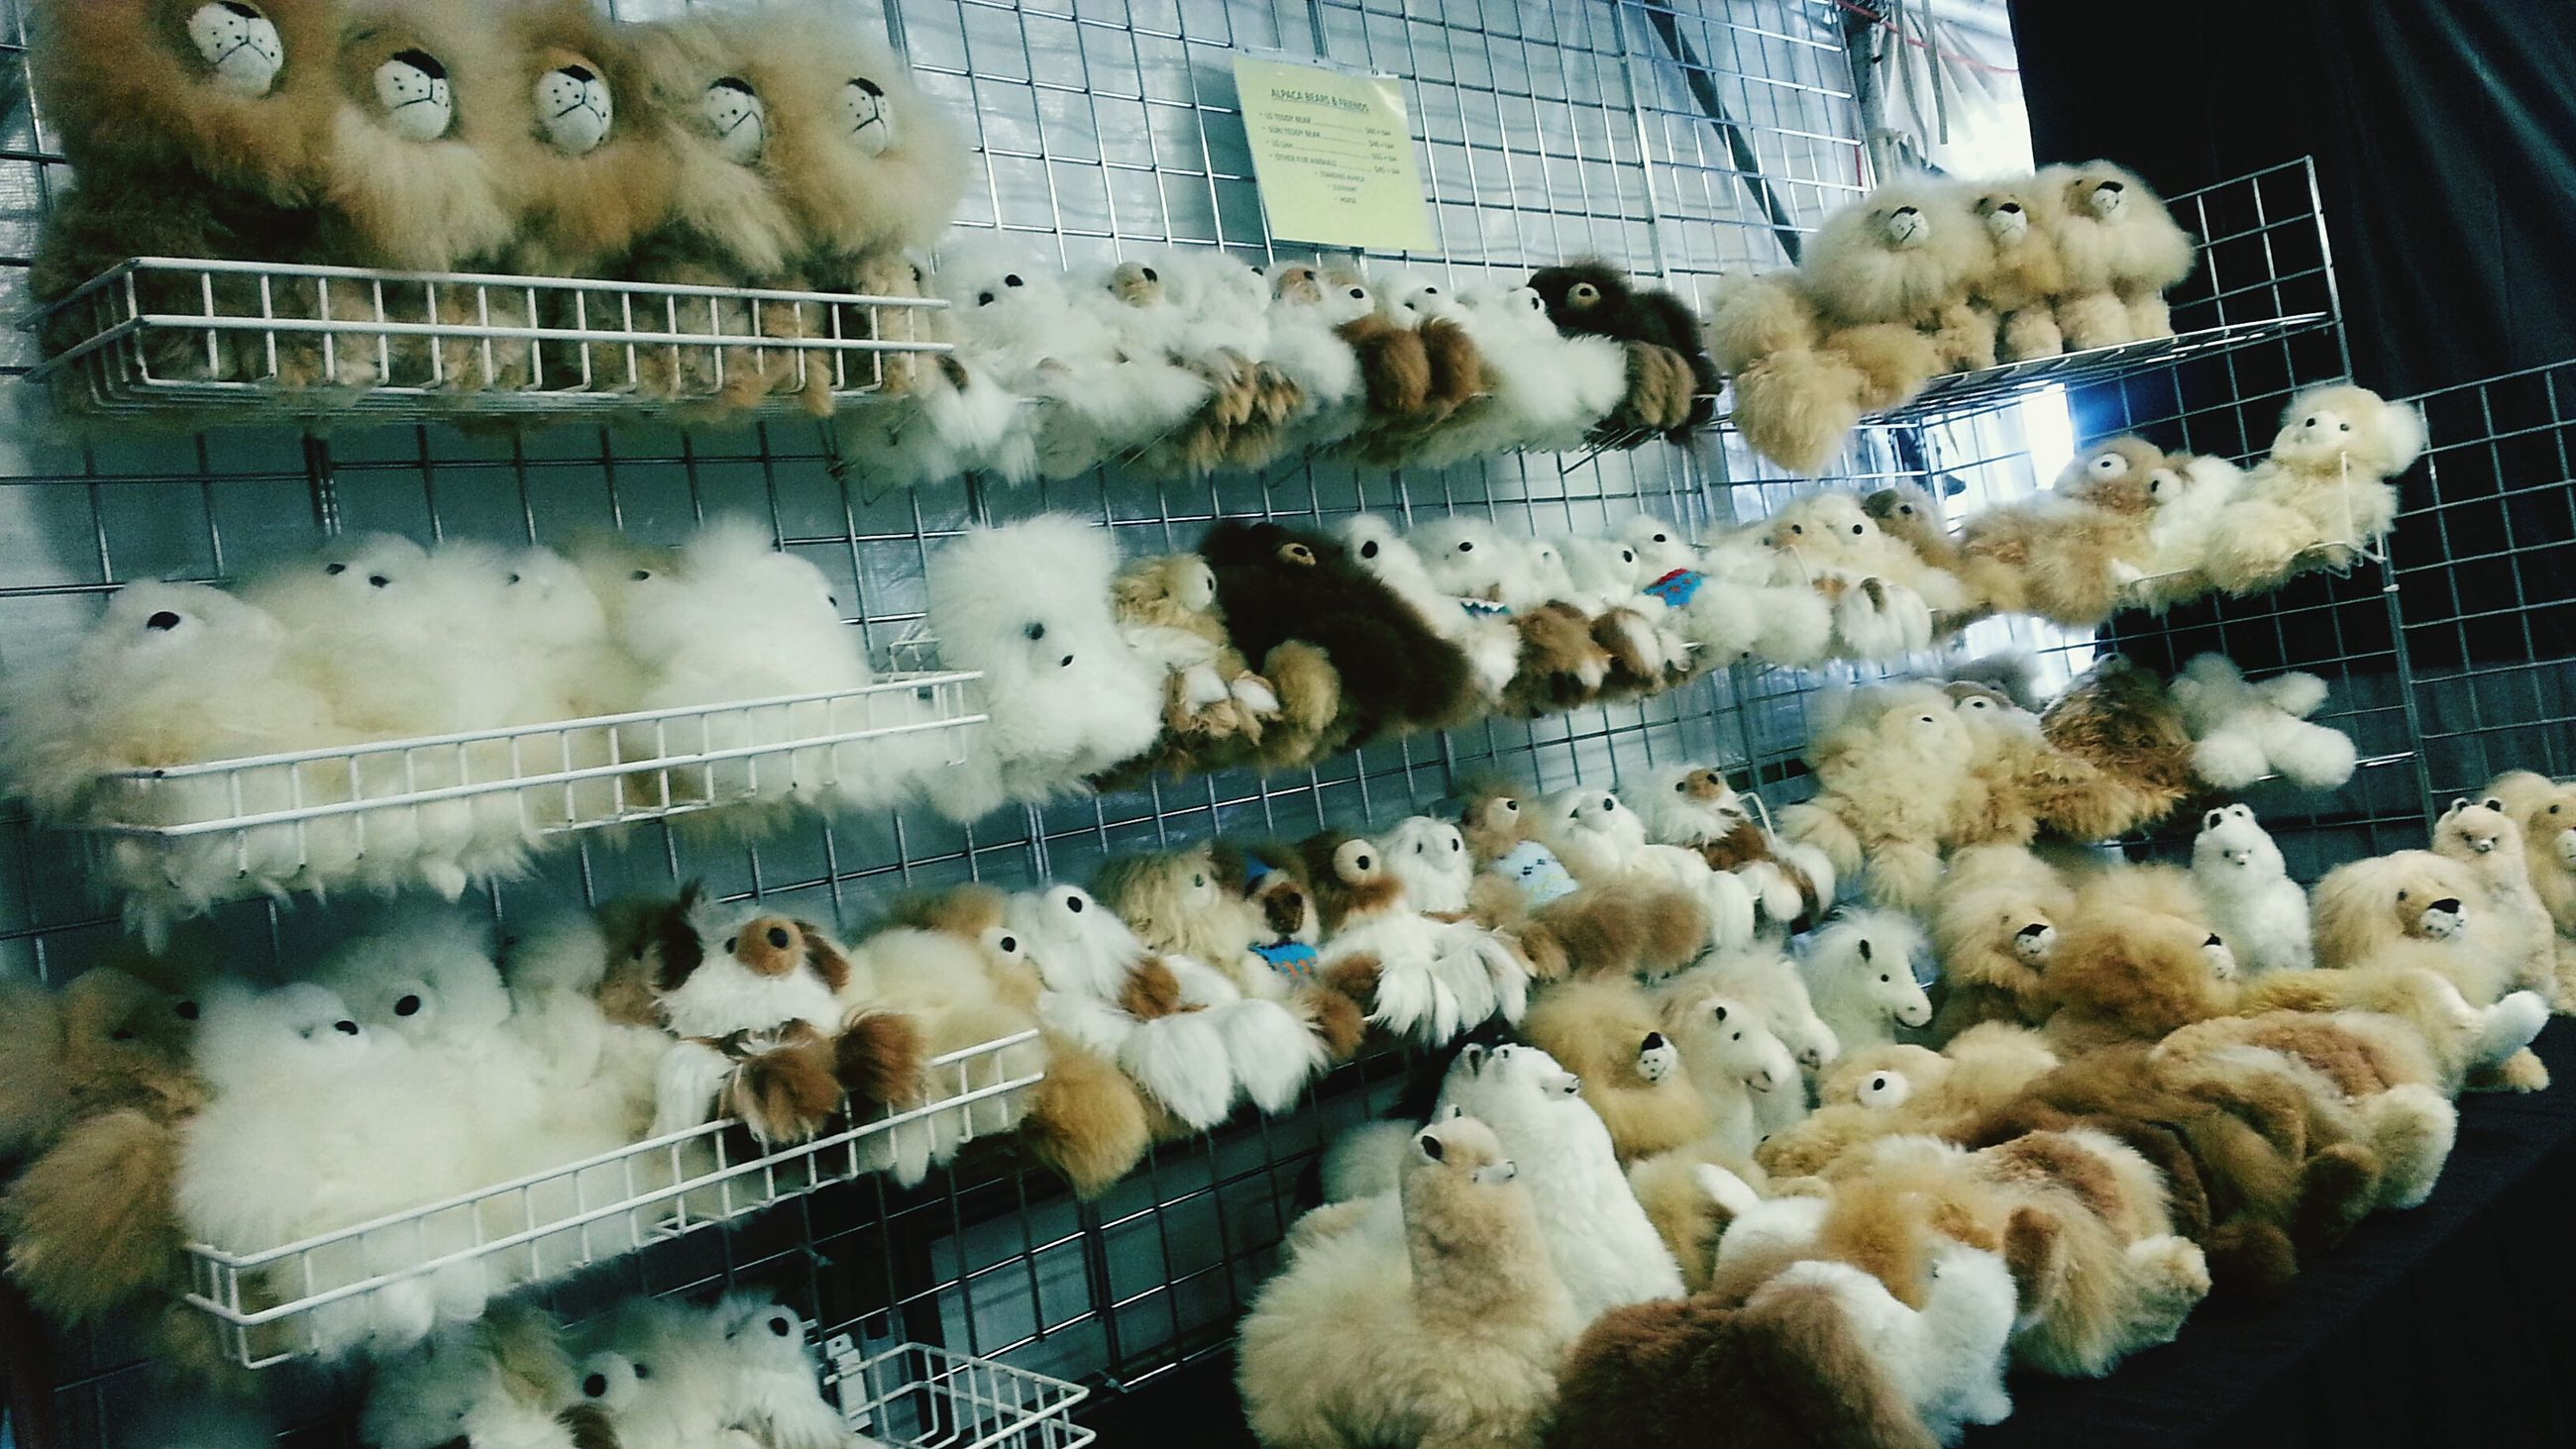 animal themes, high angle view, bird, indoors, abundance, large group of objects, variation, day, food, fish, no people, white color, domestic animals, retail, in a row, medium group of animals, food and drink, wildlife